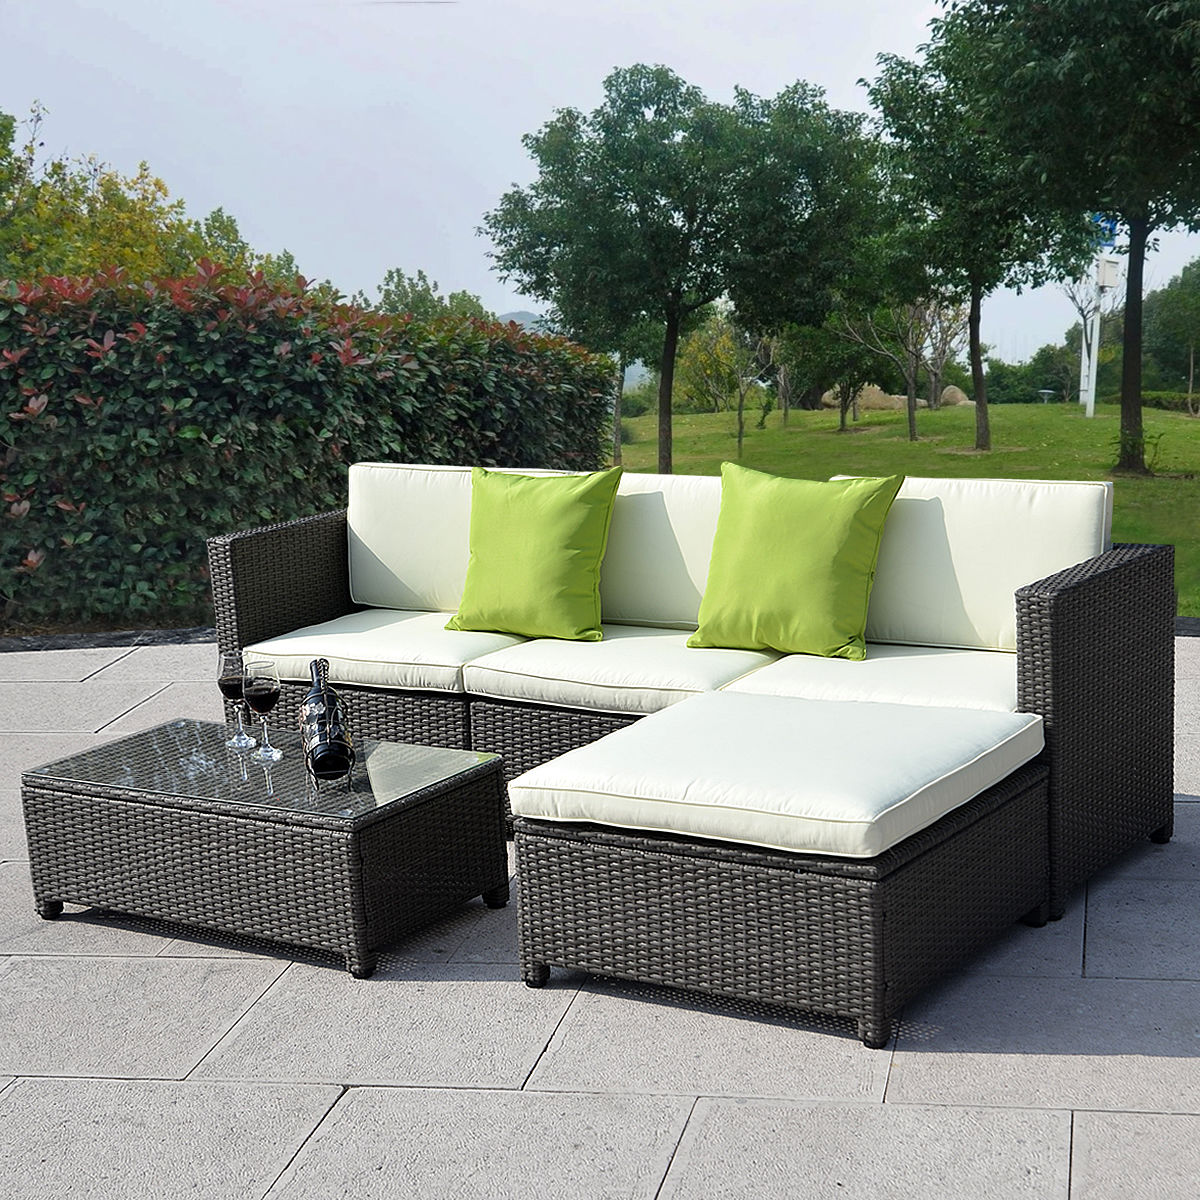 outdoor patio wicker sofa set 5pc pe rattan. Black Bedroom Furniture Sets. Home Design Ideas